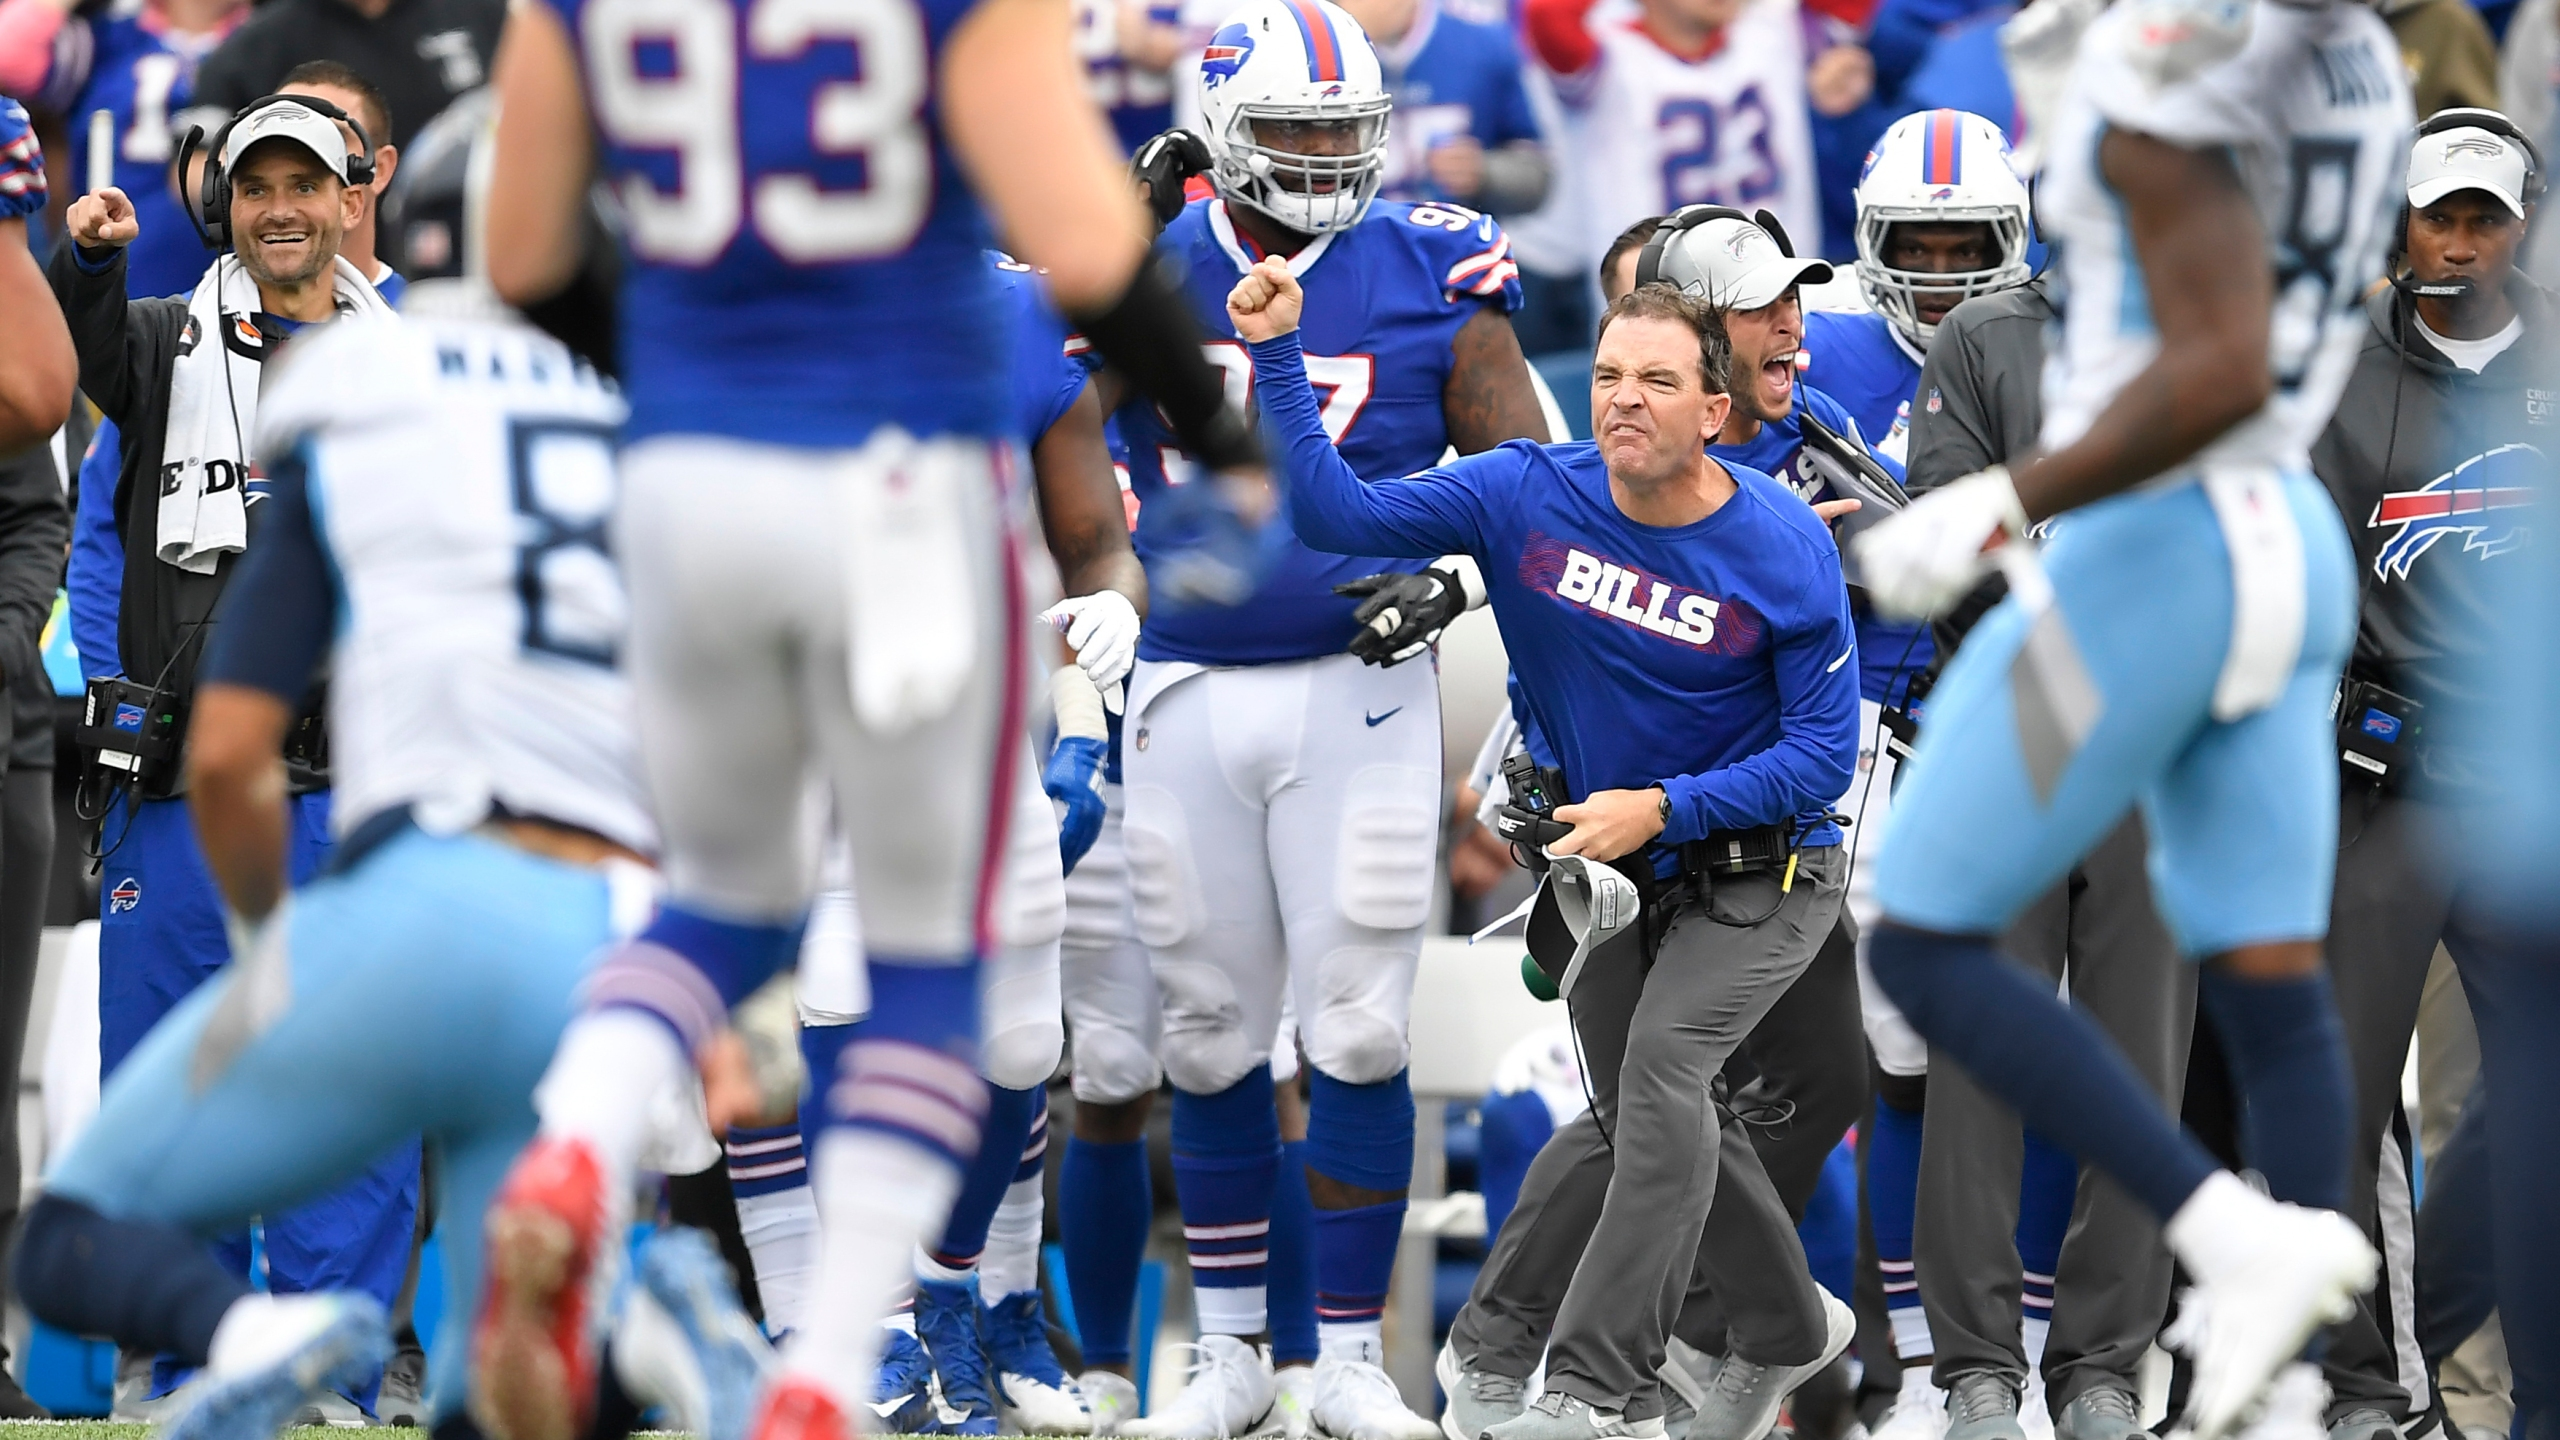 Titans Bills Football_1539052941915